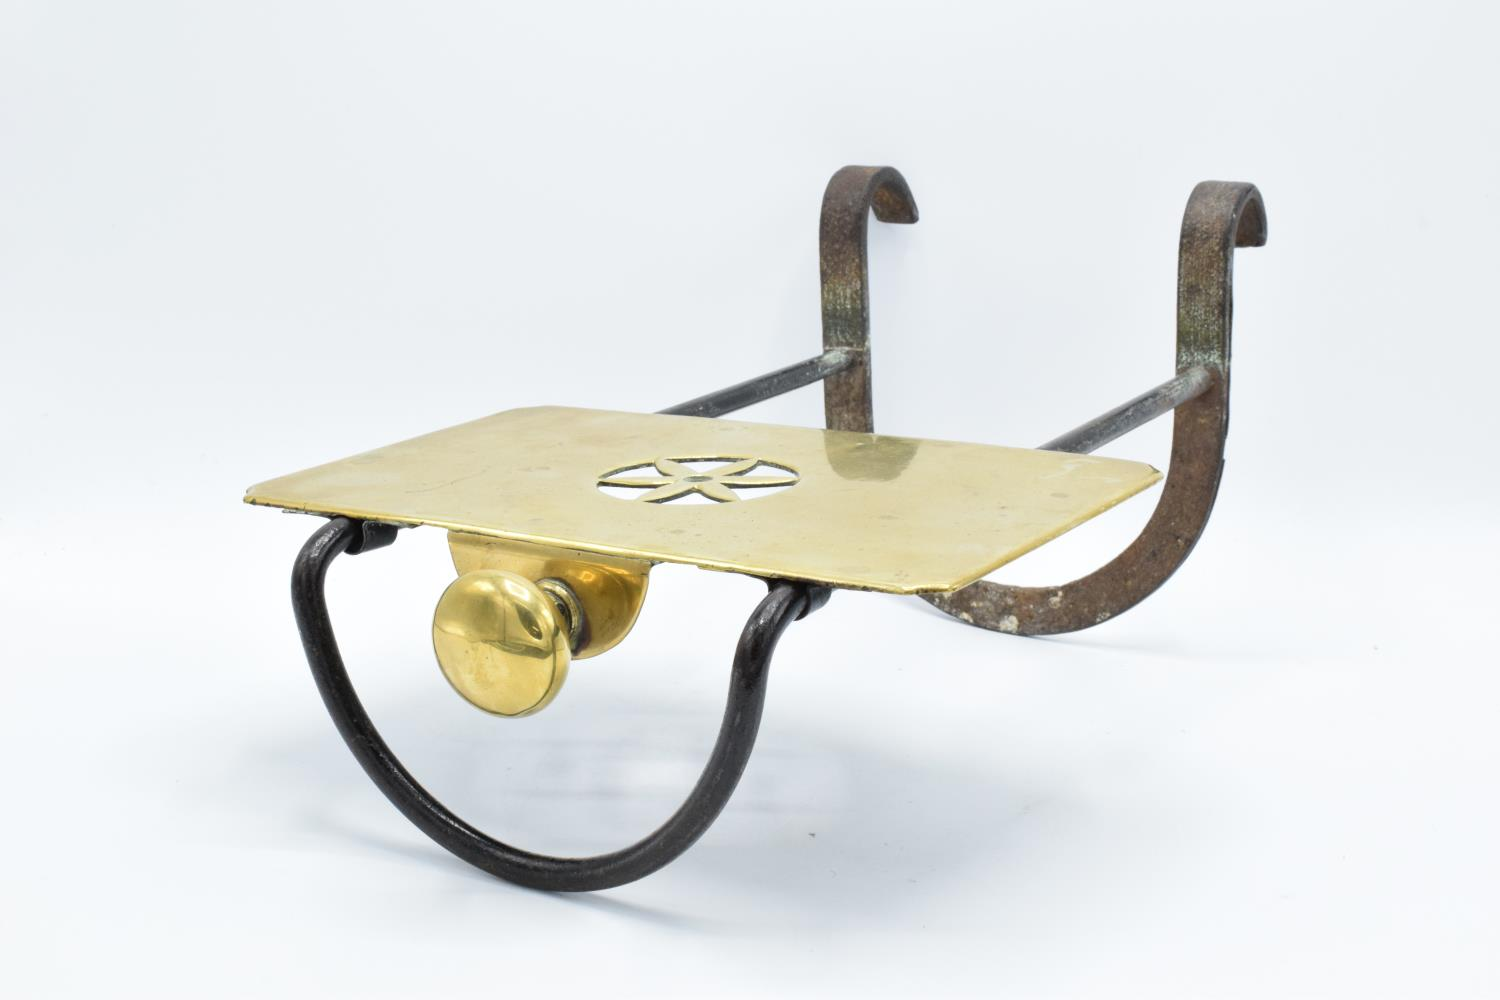 Late Victorian cast iron and brass kettle/ teapot stand for an open fire/ range - Image 2 of 3